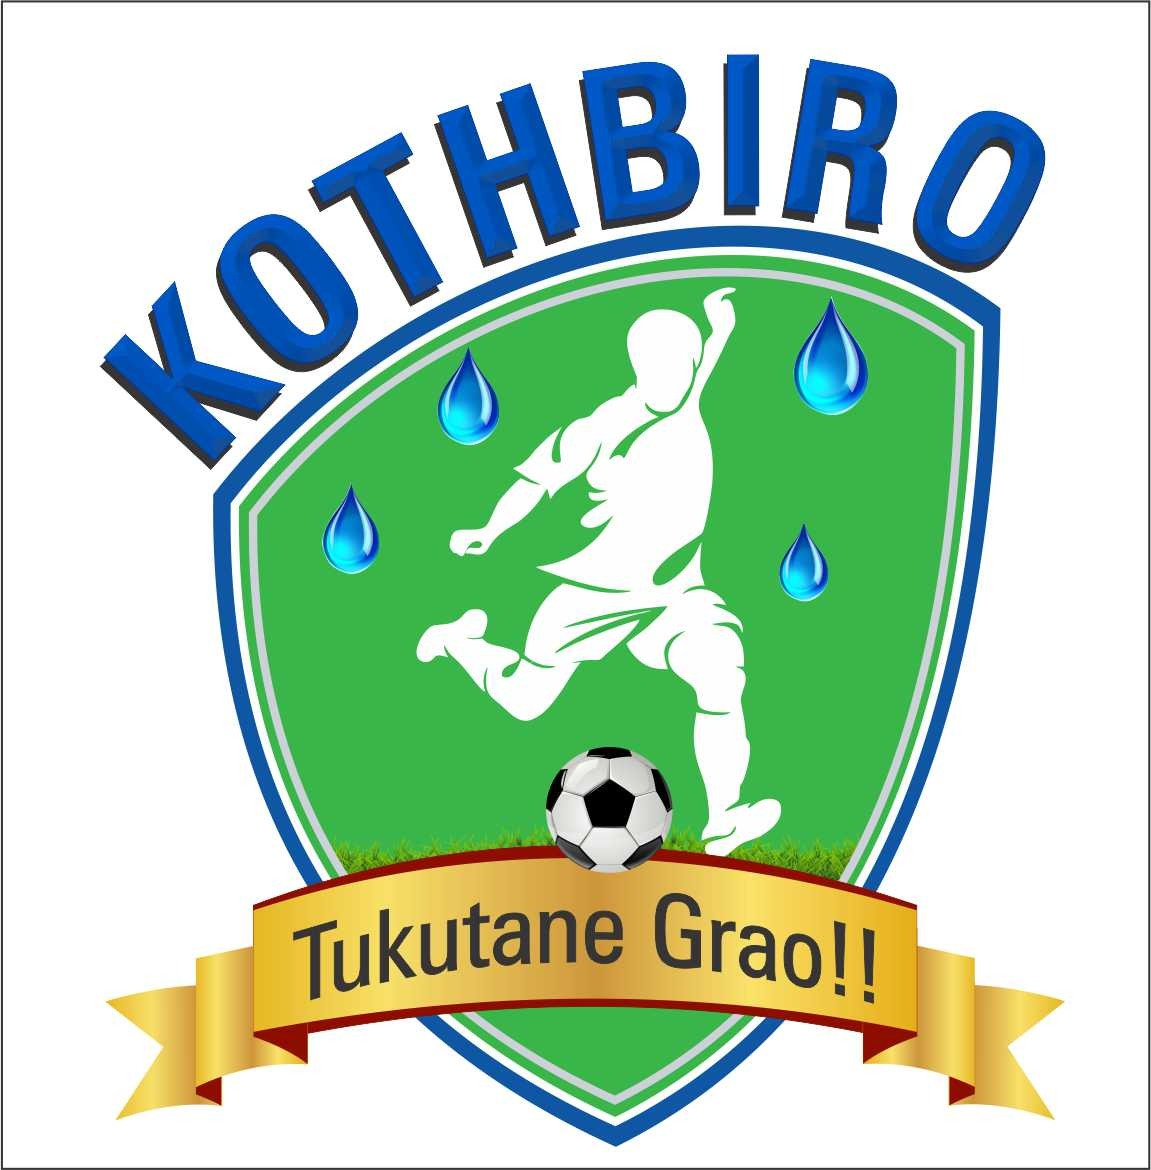 Kothbiro Official Logo